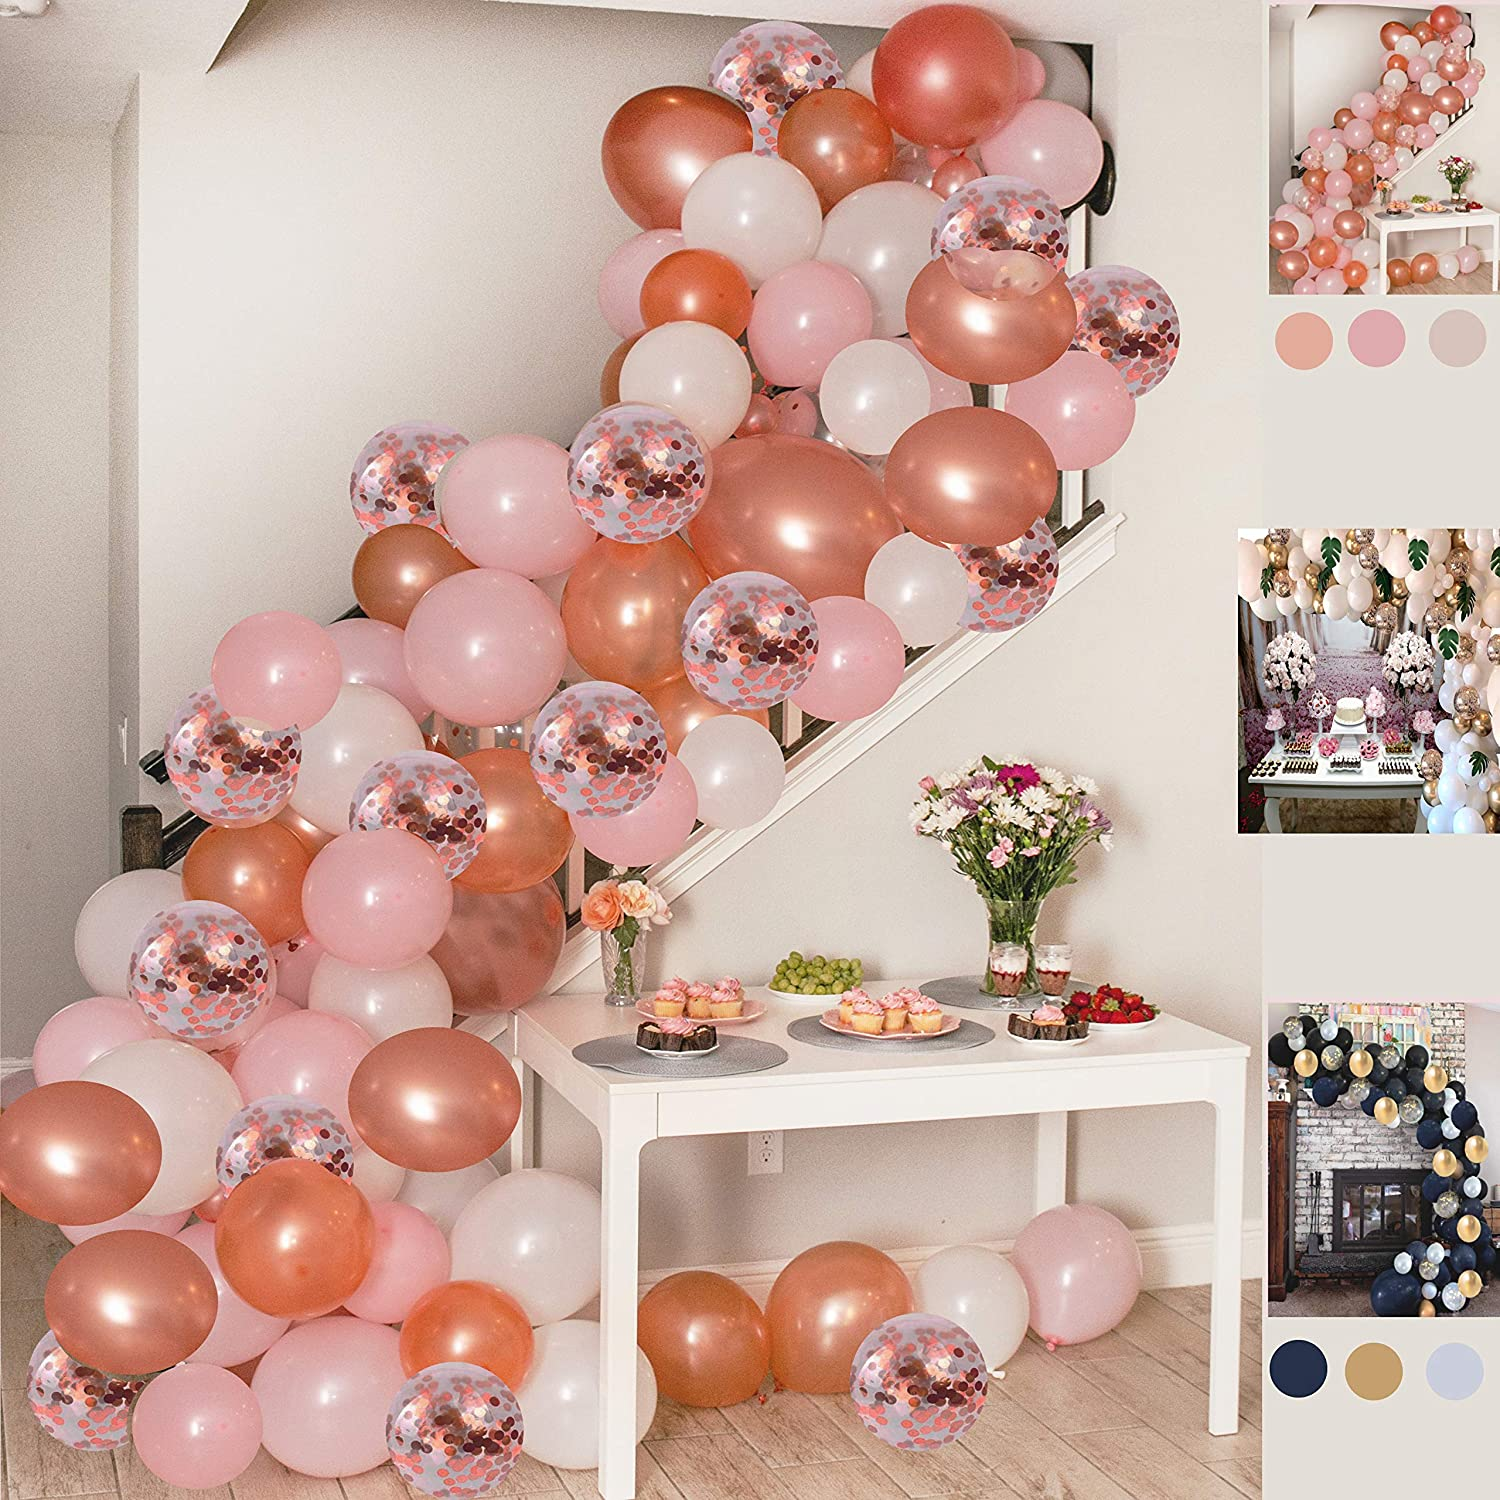 Balloon Garland Kit Pink Rose Gold White Confetti Balloons Big Balloons mix 16 ft long Decorations for Parties Wedding Baby Shower Graduation Includes Glue Dots Strip Hand Pump Ribbon Tying Tool Hooks